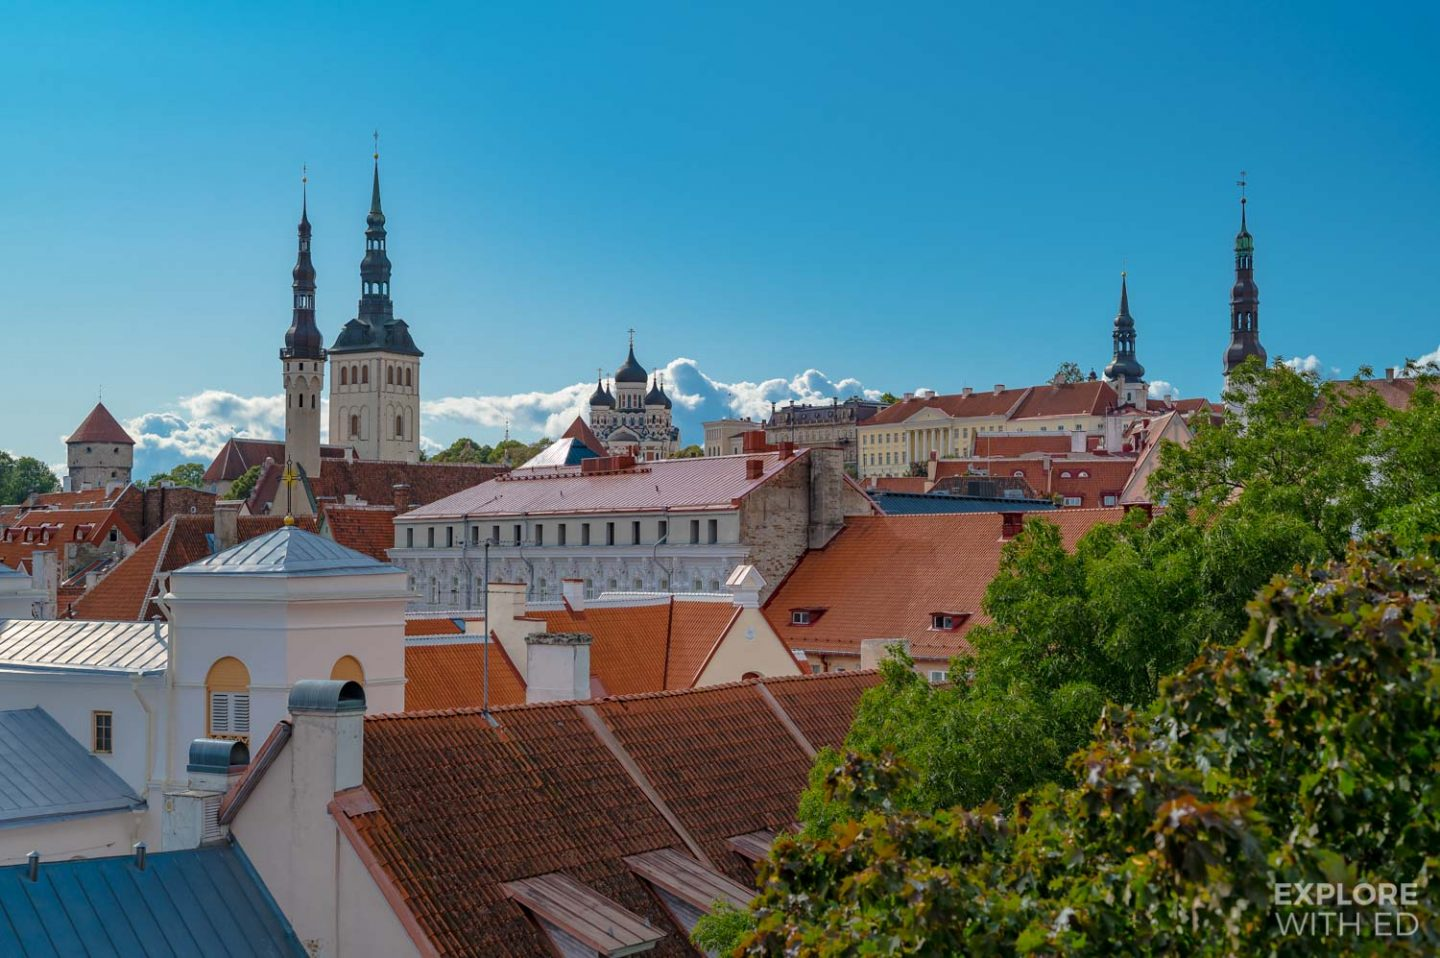 Rooftop view of Tallinn's spires from the Hellemann Tower